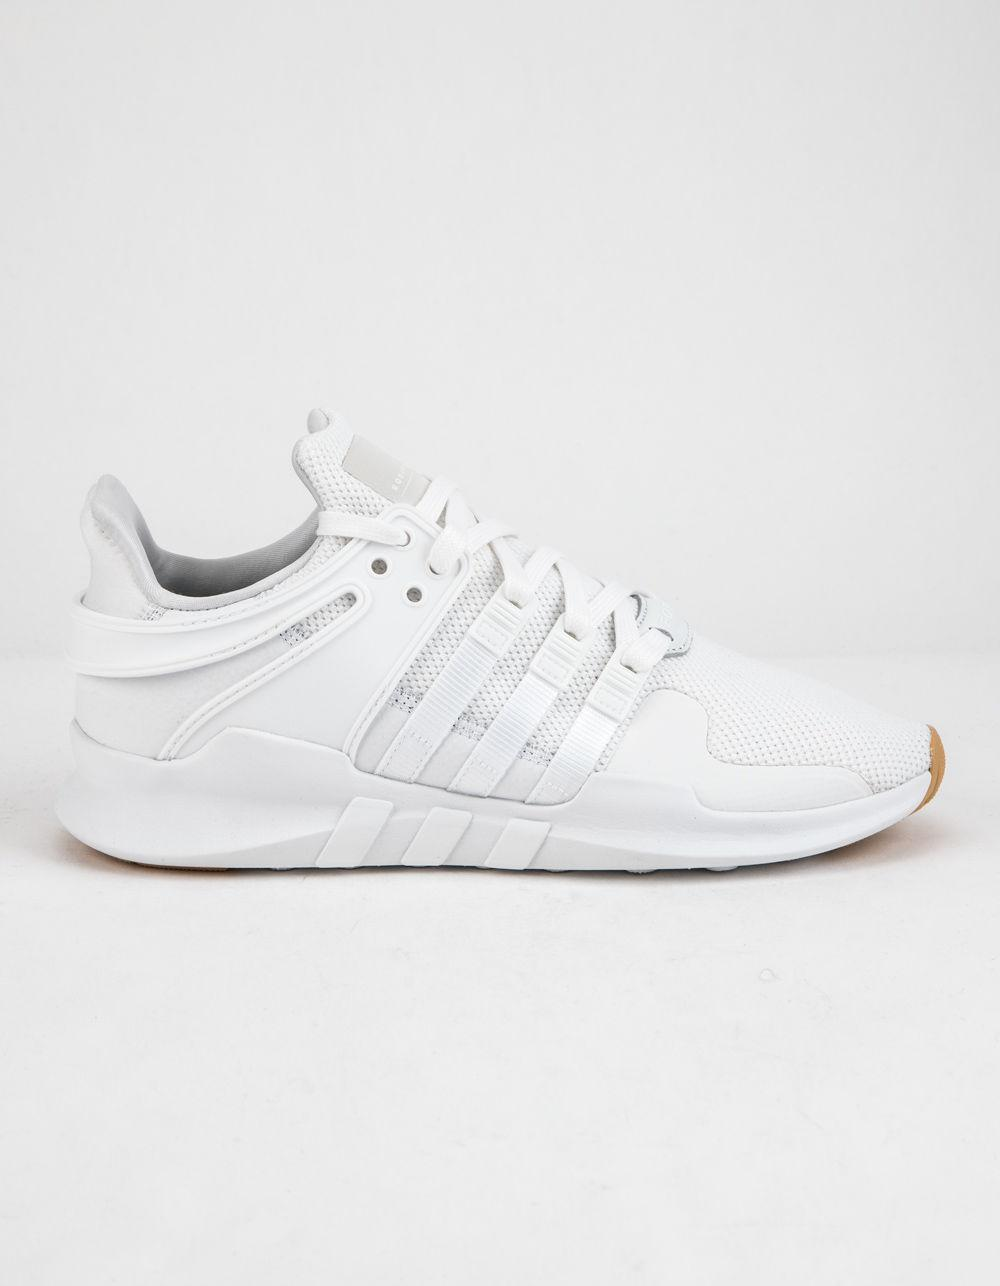 huge discount 2dea1 4819c adidas. Mens Eqt Support Adv White Shoes